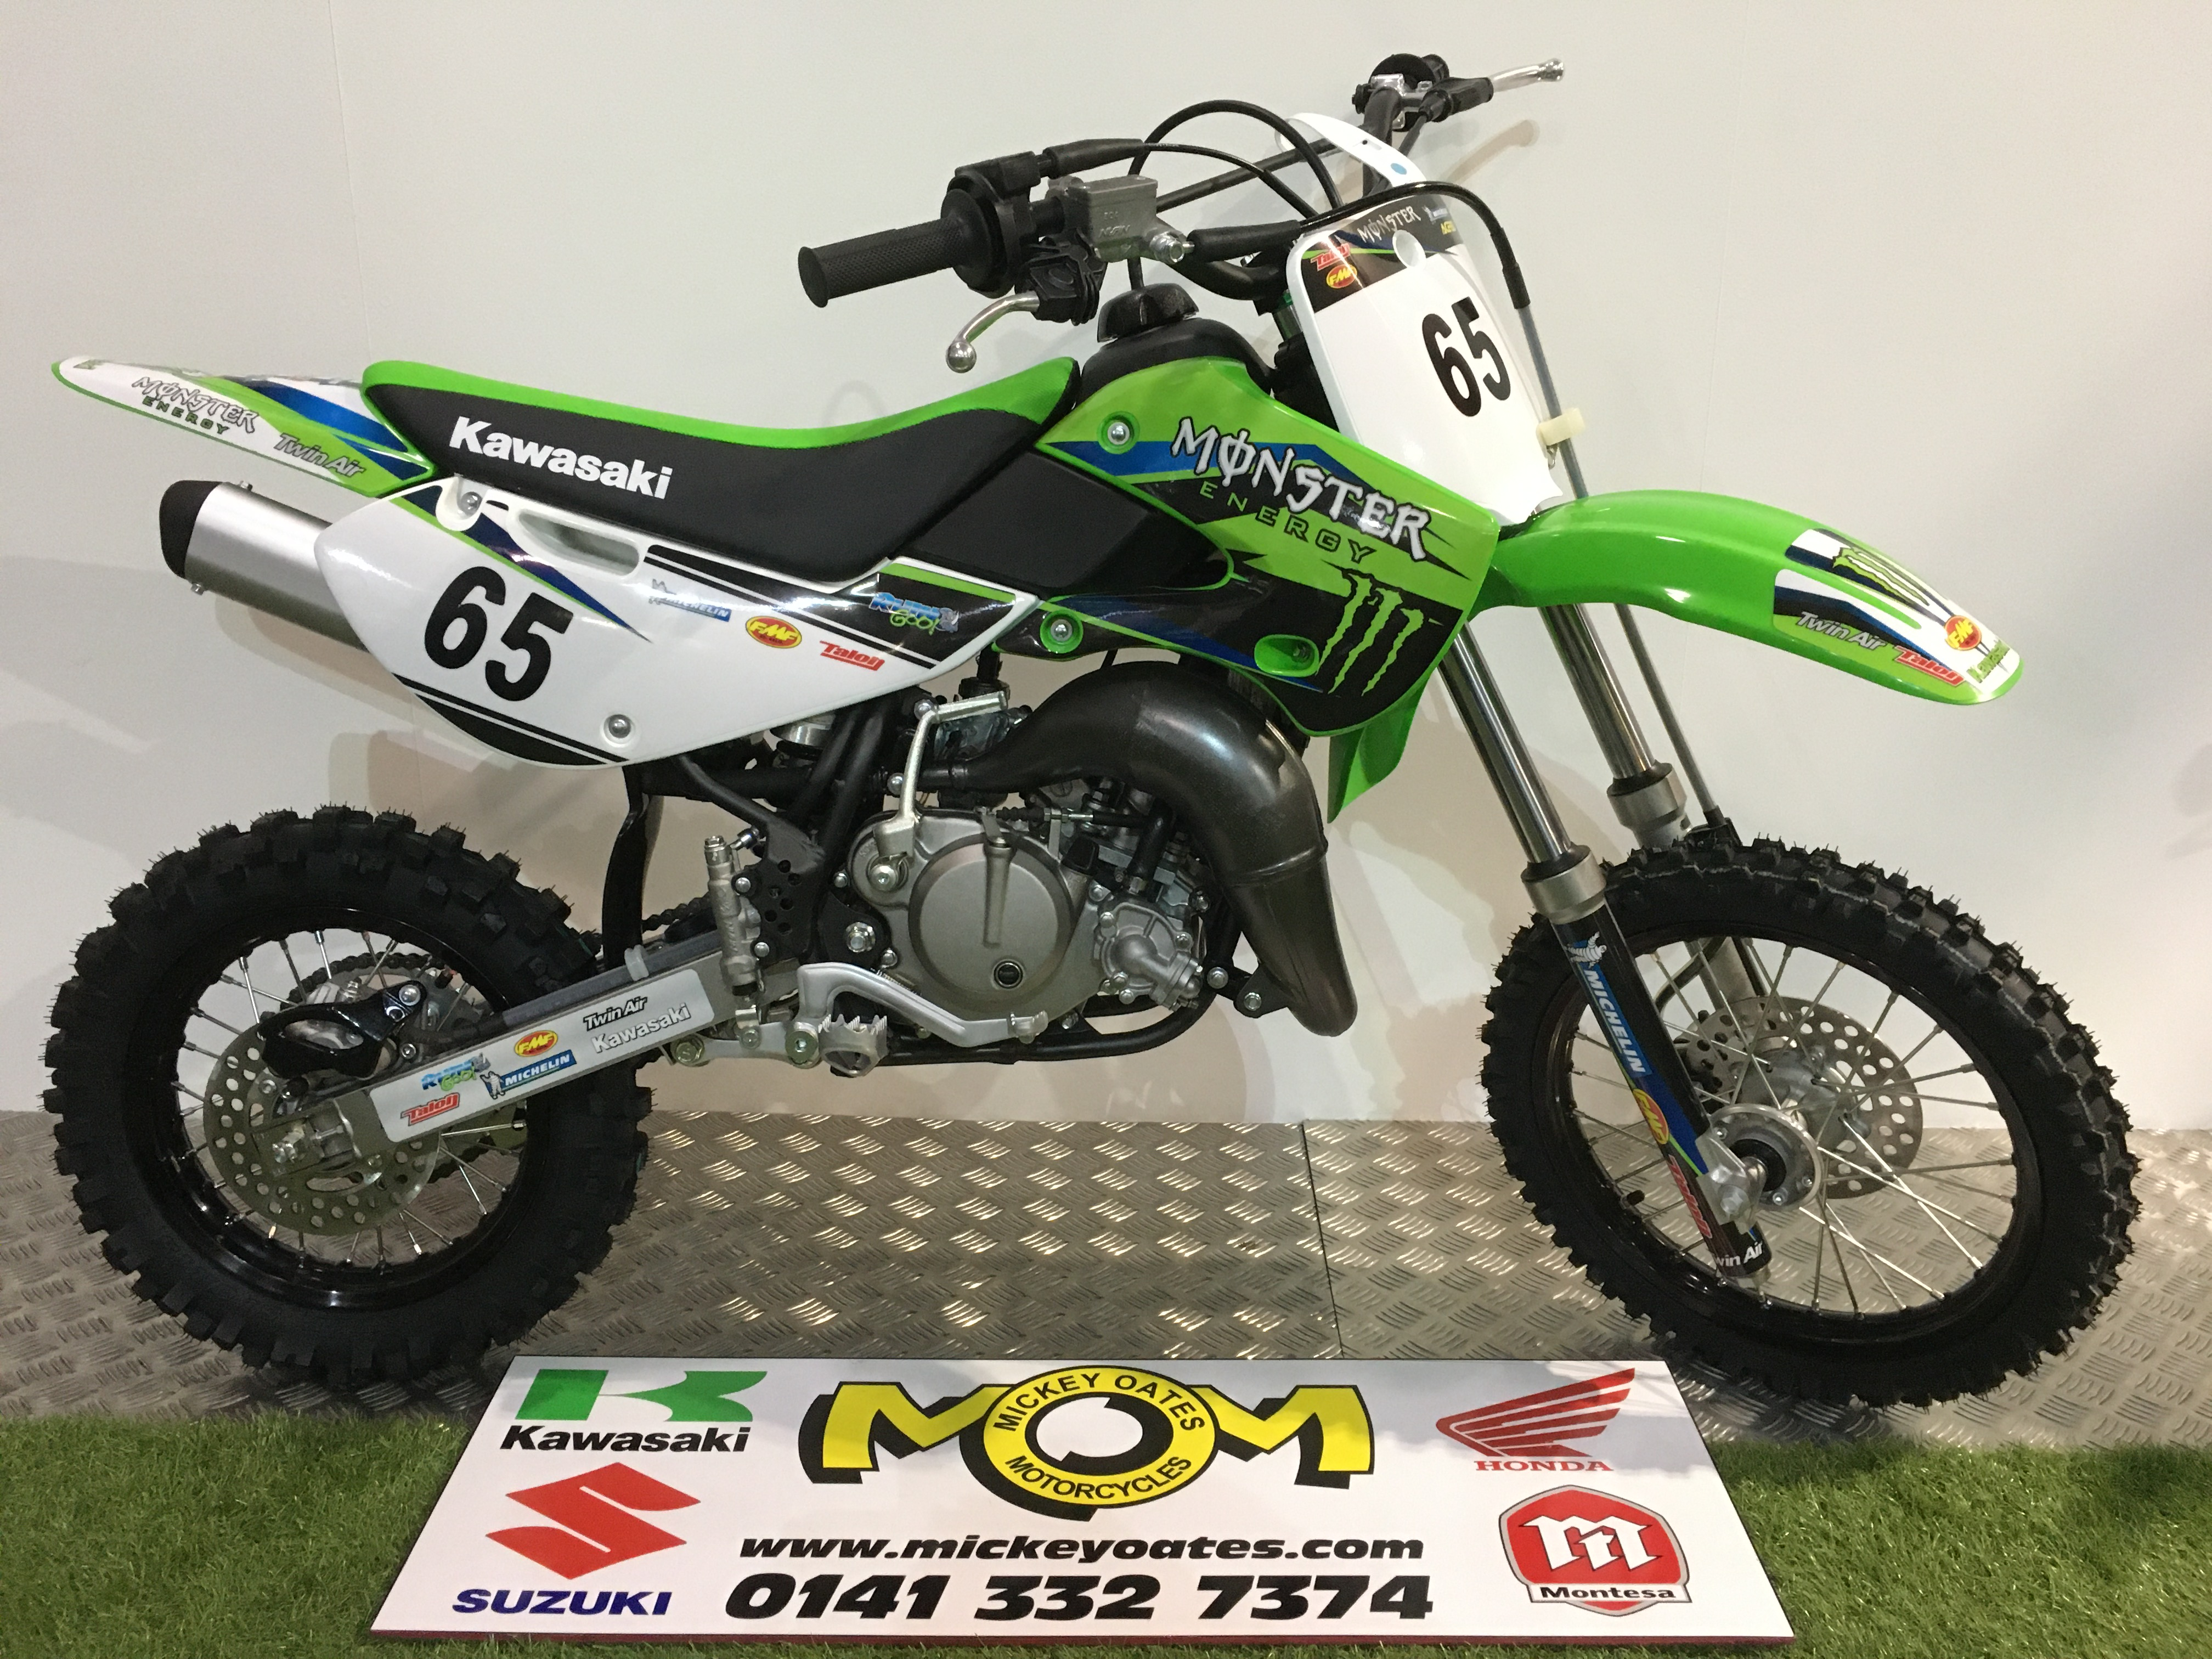 NEW KX65 Monster Edition